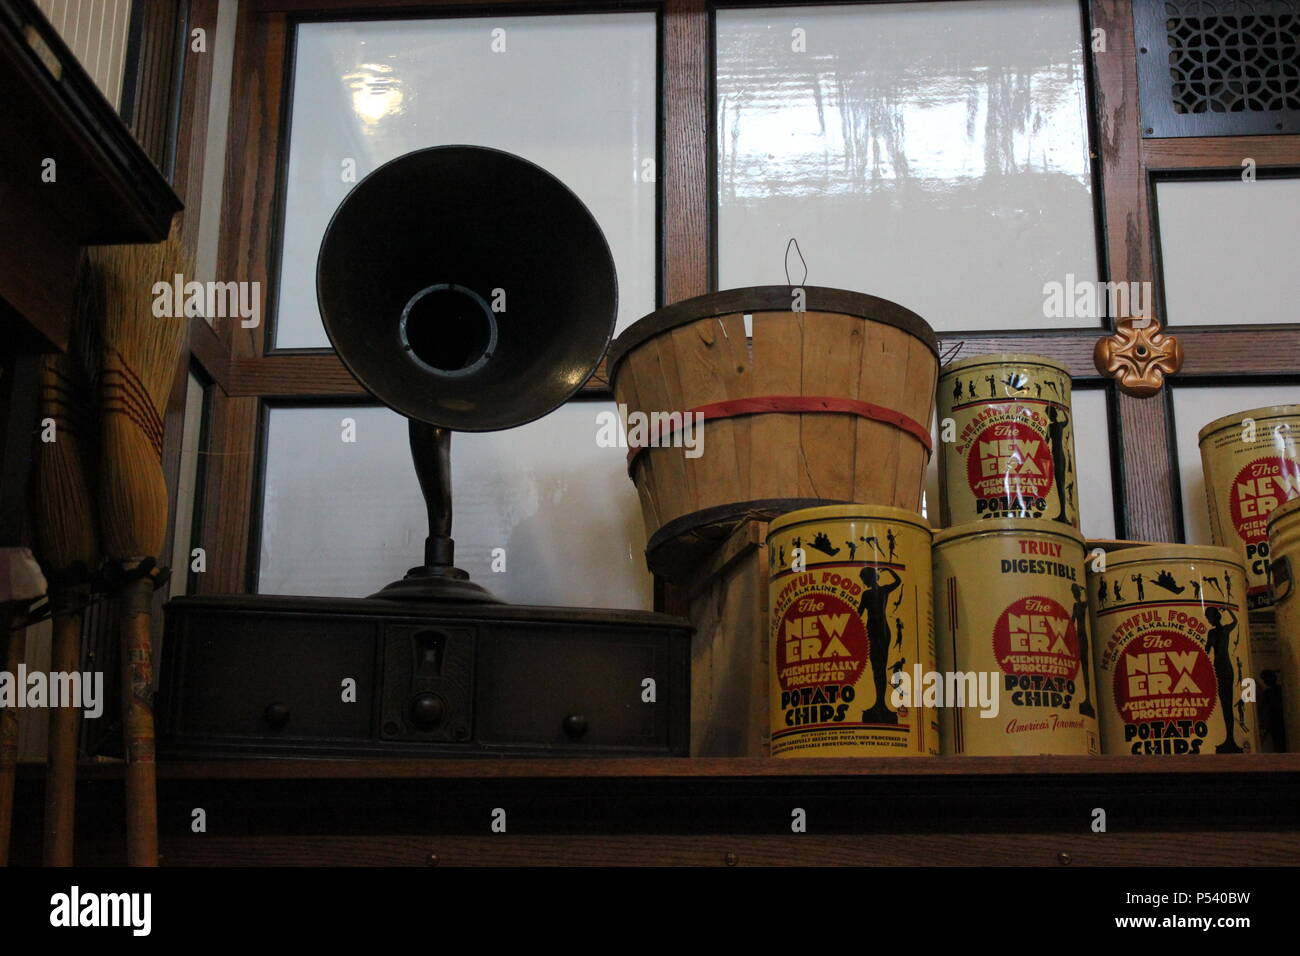 Variety of items such as a vintage megaphone and baskets for sale in the meat market grocery store at Glenview Park District's working Wagner Farm in suburban Chicago, Illinois. - Stock Image